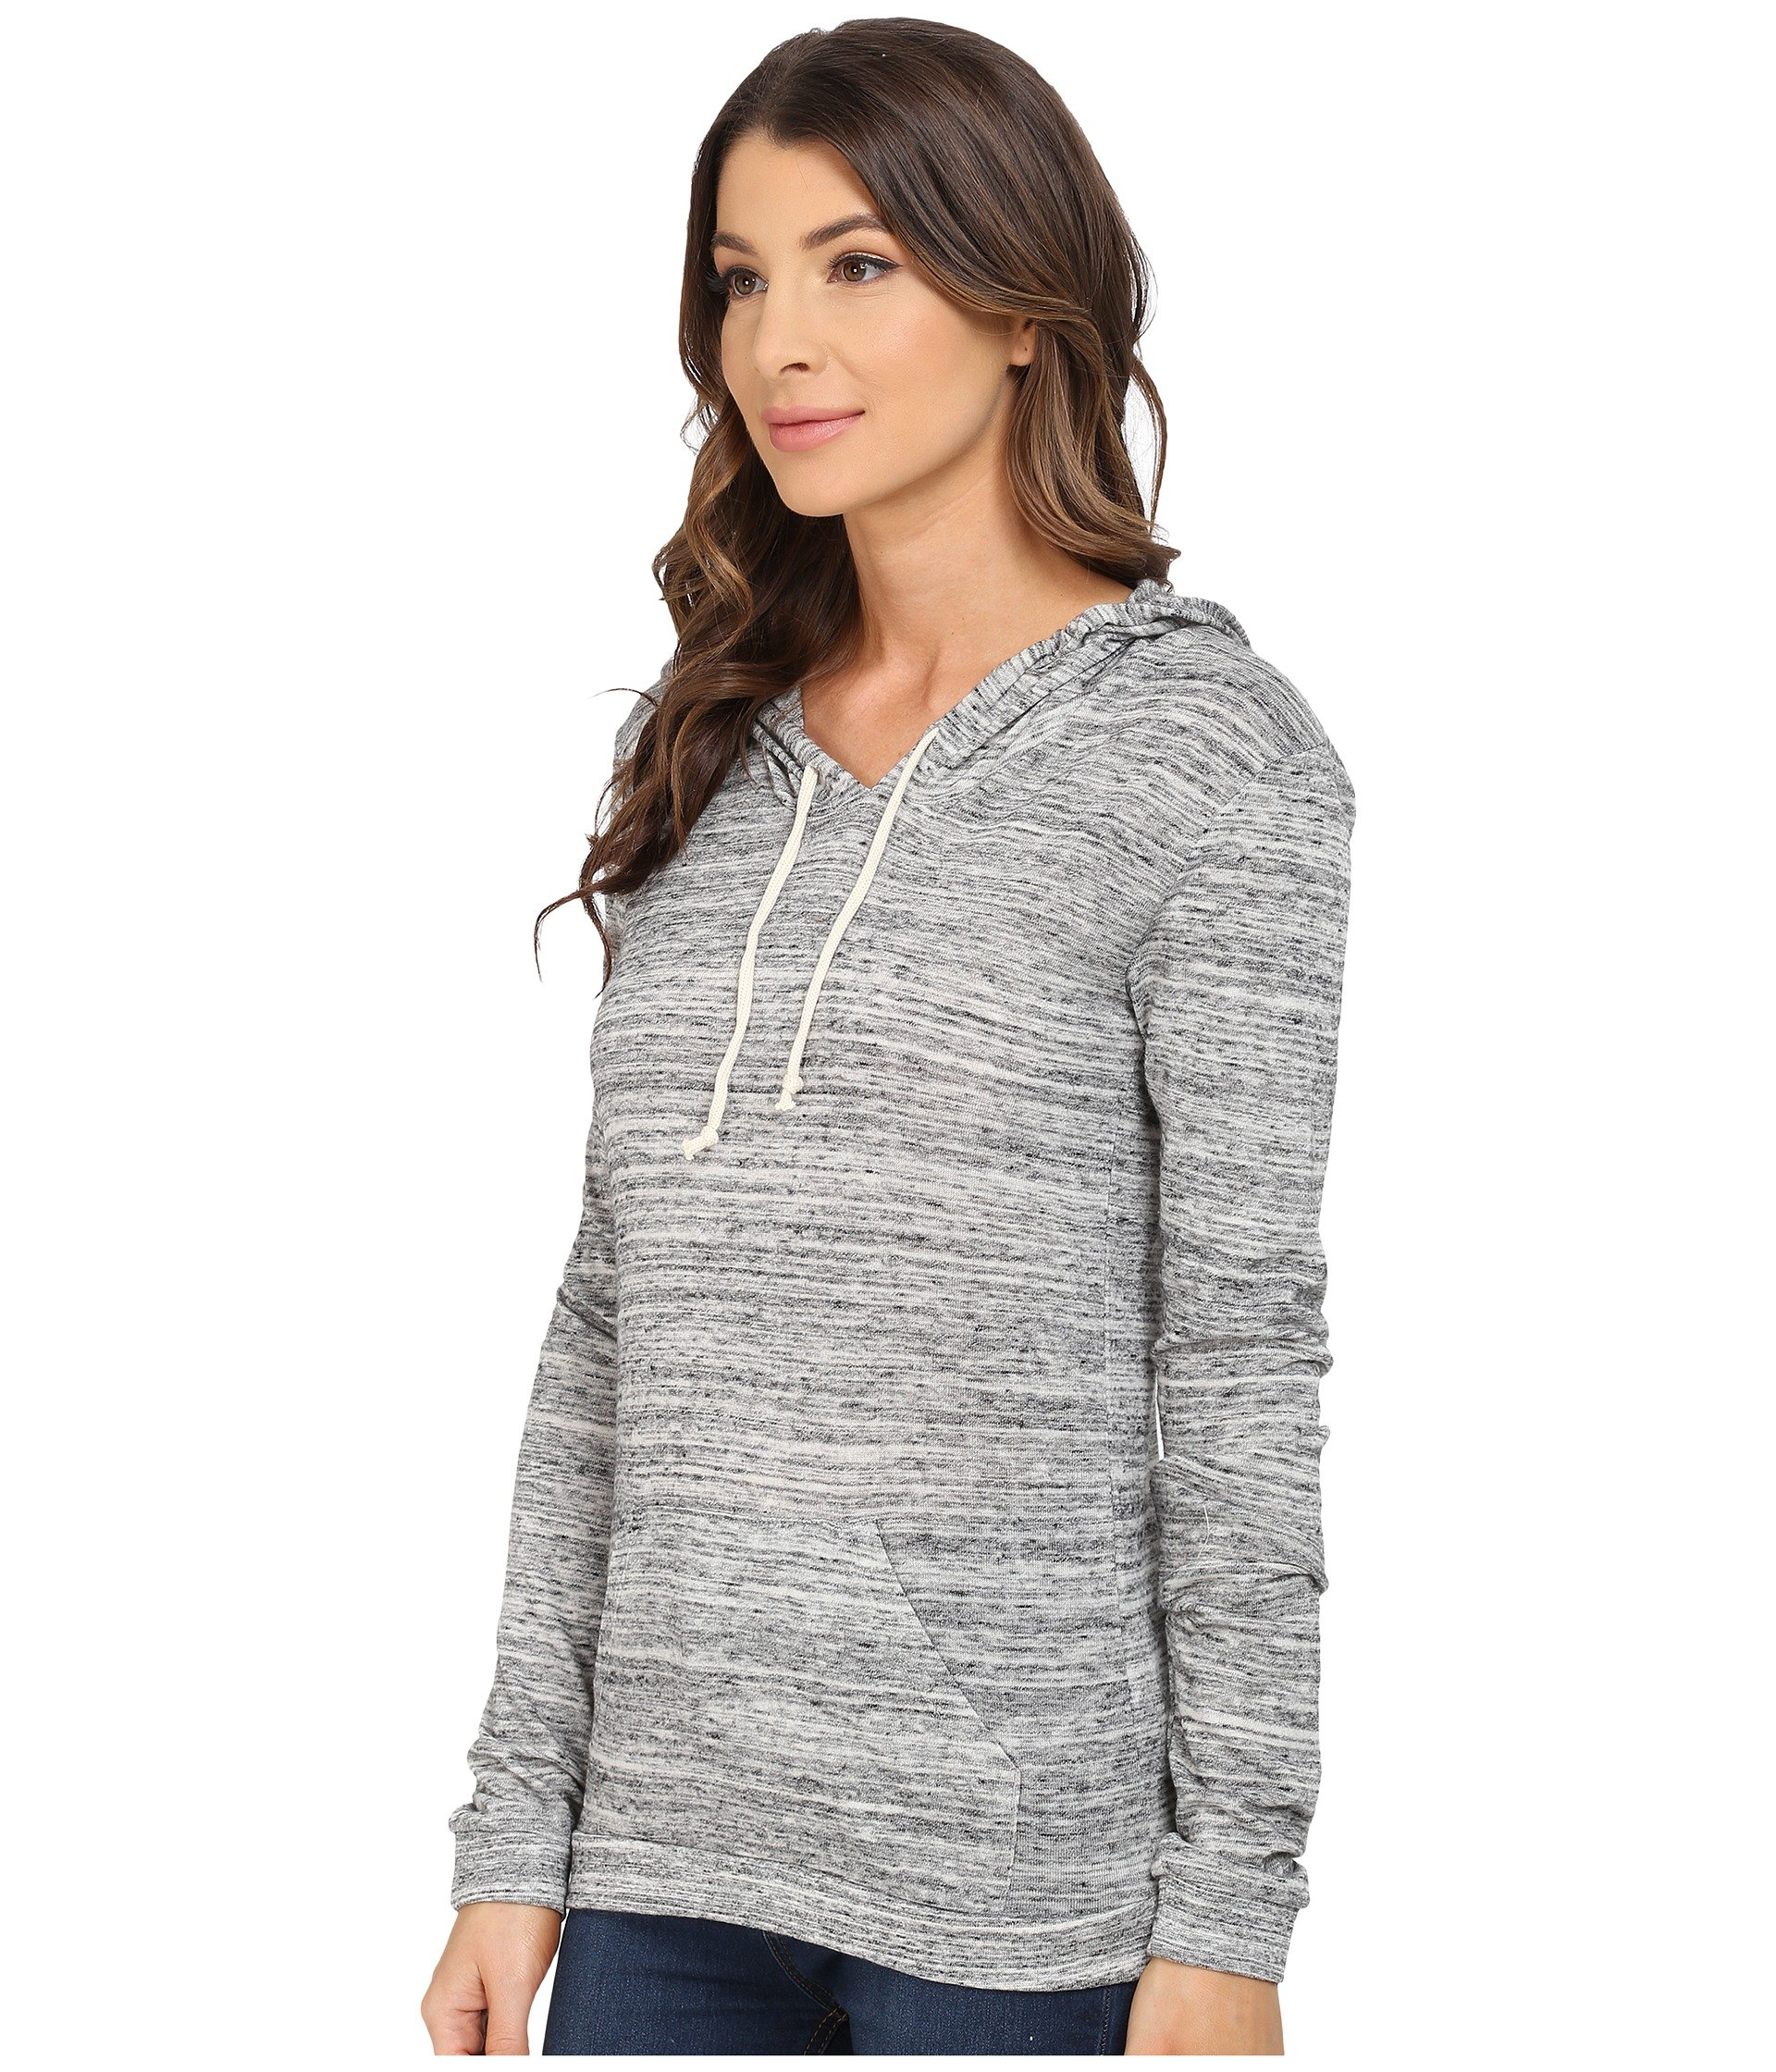 Urban Hoodie Alternative Classic Pullover Jersey Grey Eco CwXwnqfOr